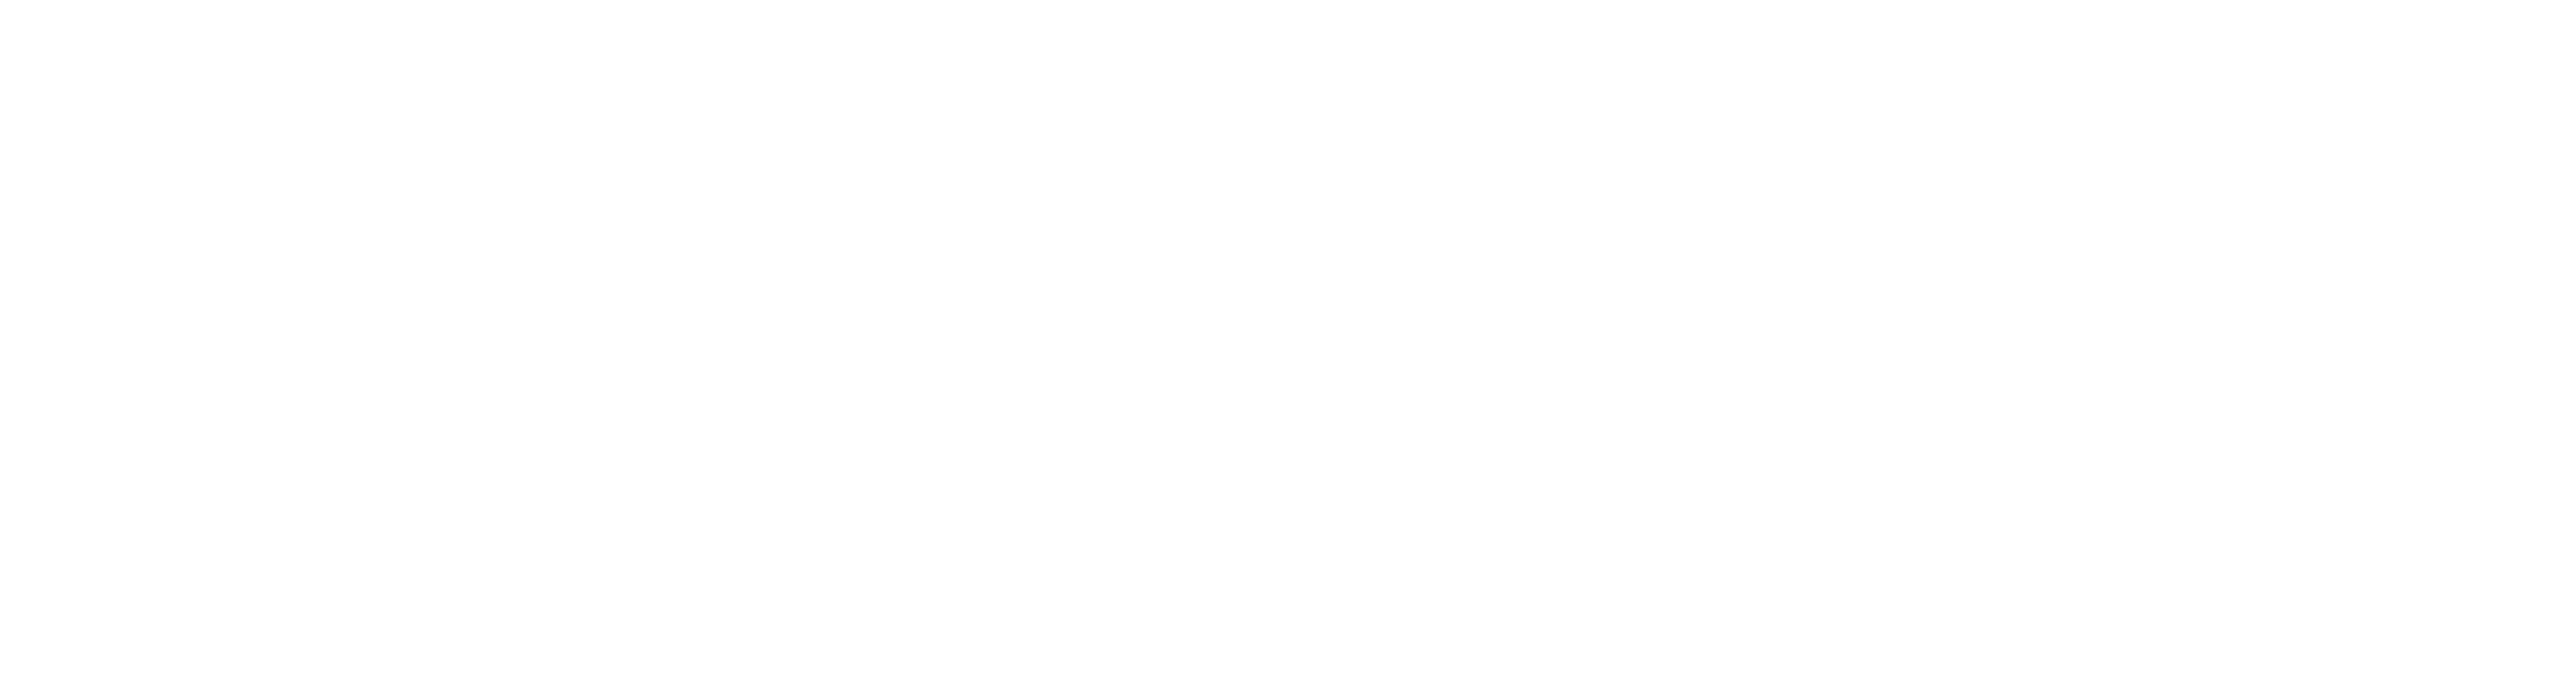 BAIER Lighting Logo